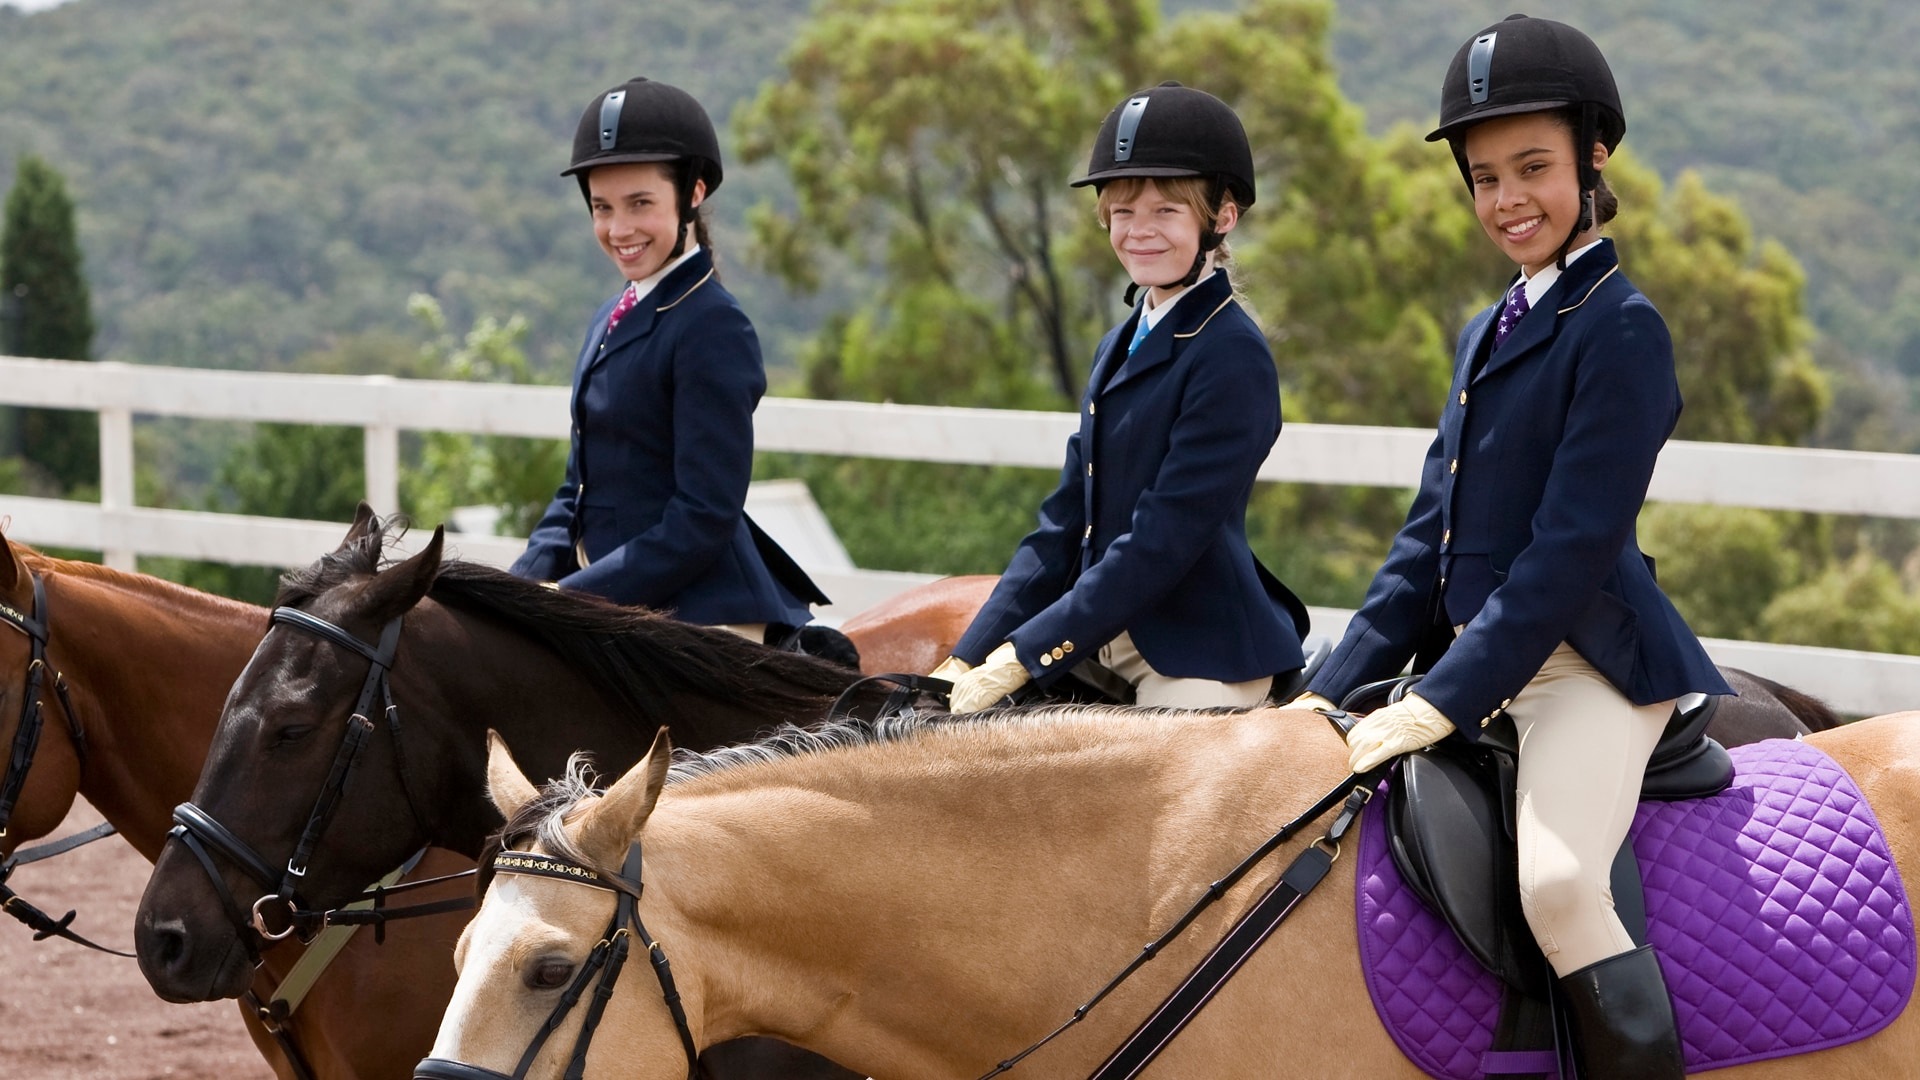 Watch The Saddle Club Online | Peacock